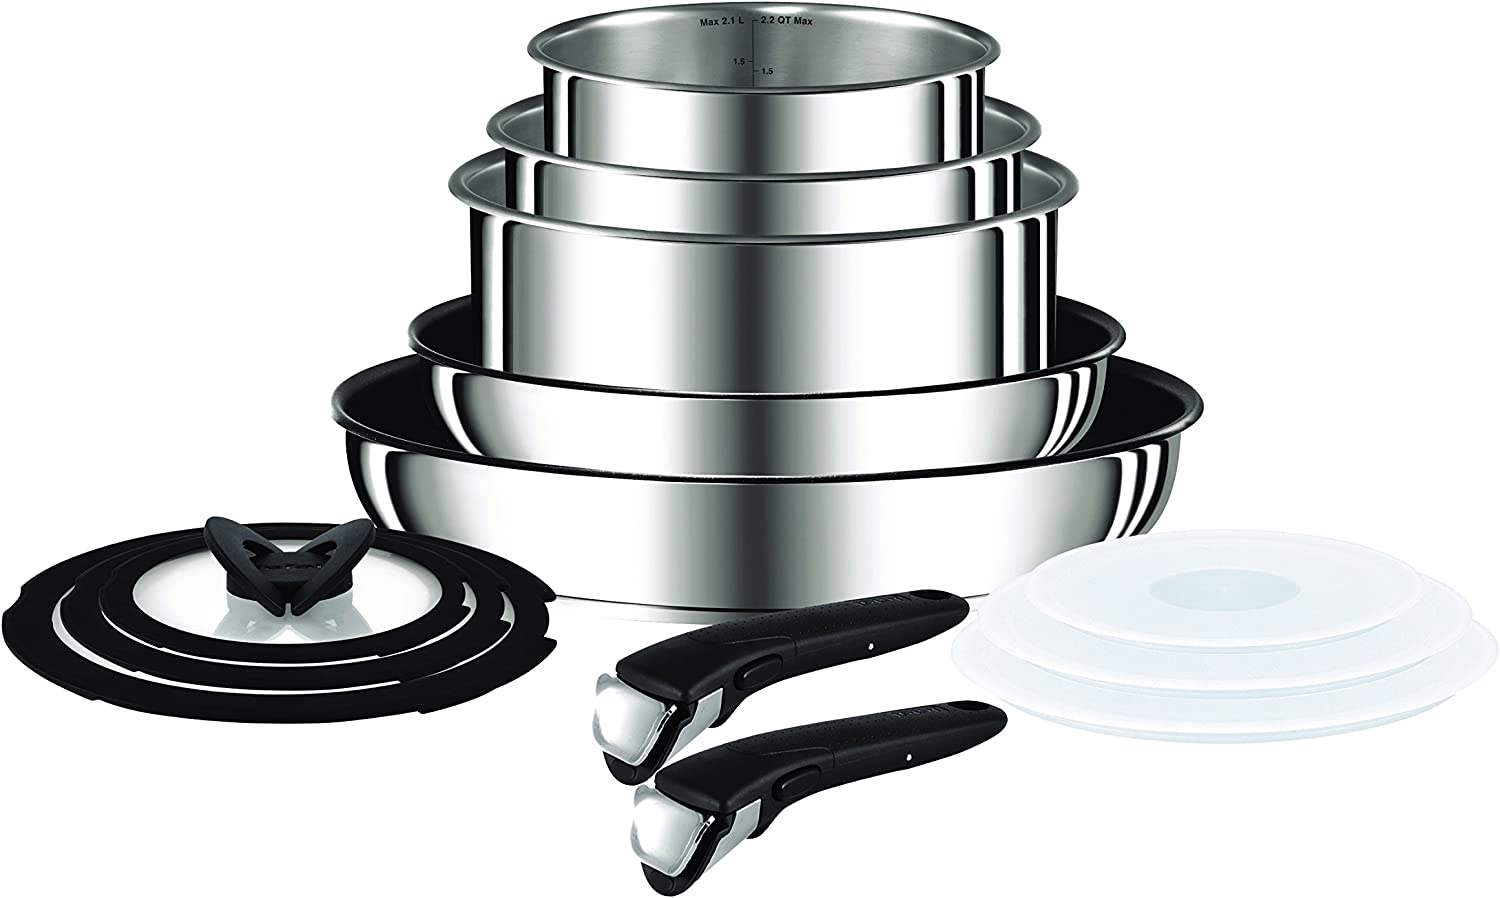 Tefal Ingenio Essential Non Induction 14 Piece Pan Set with Detachable Handles